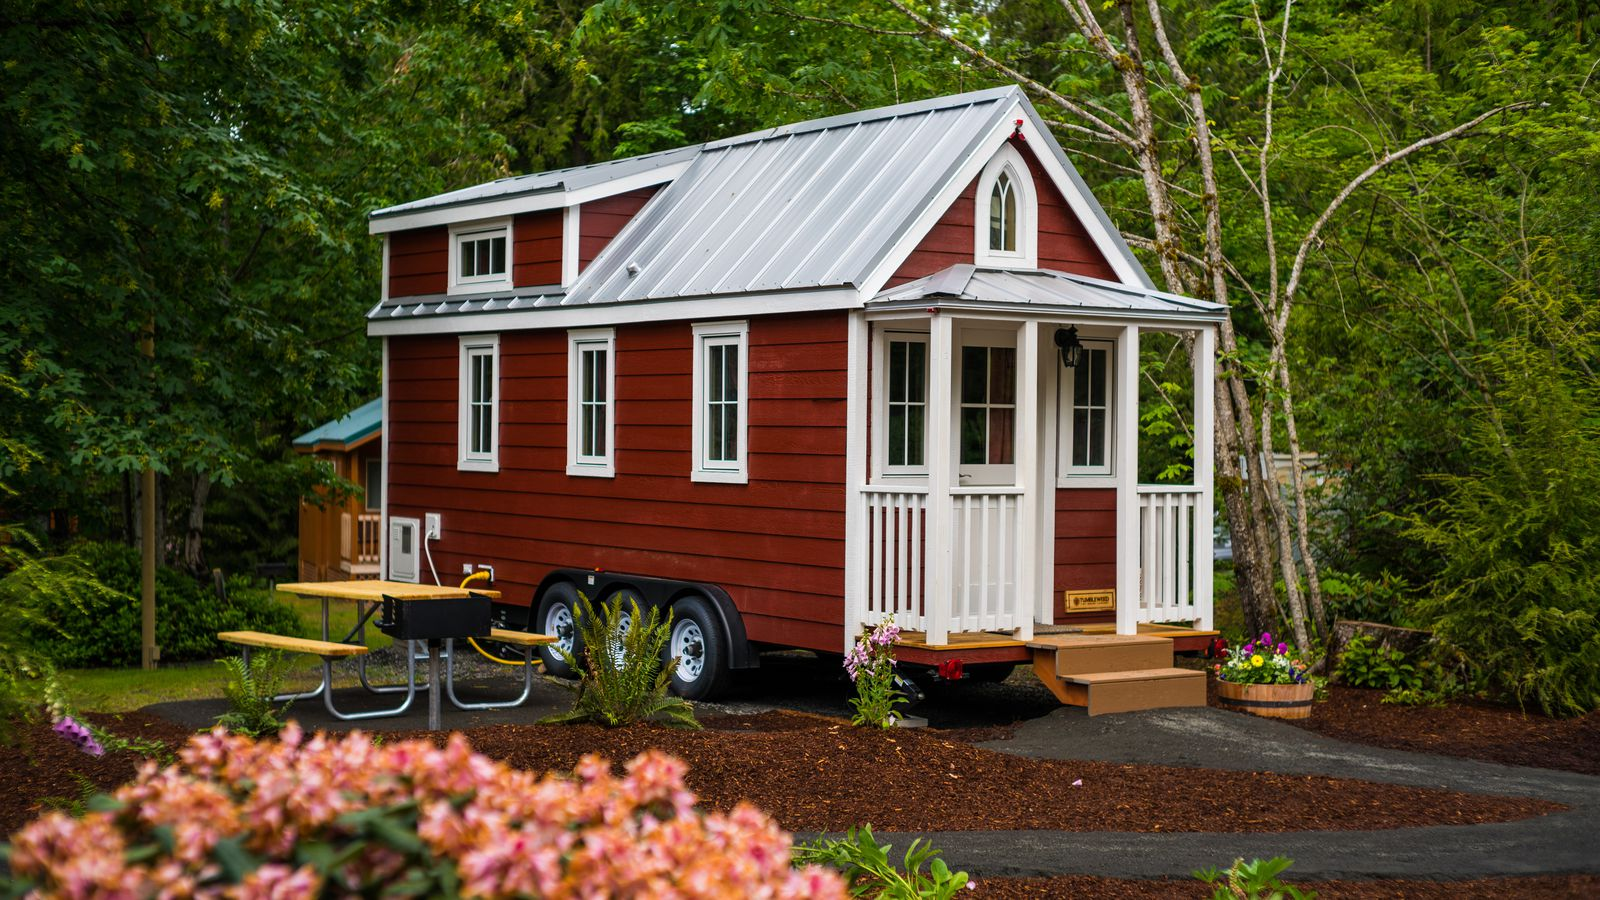 Tiny Home Designs: Oregon Tiny House Bill Moves Closer To Reality, But Not